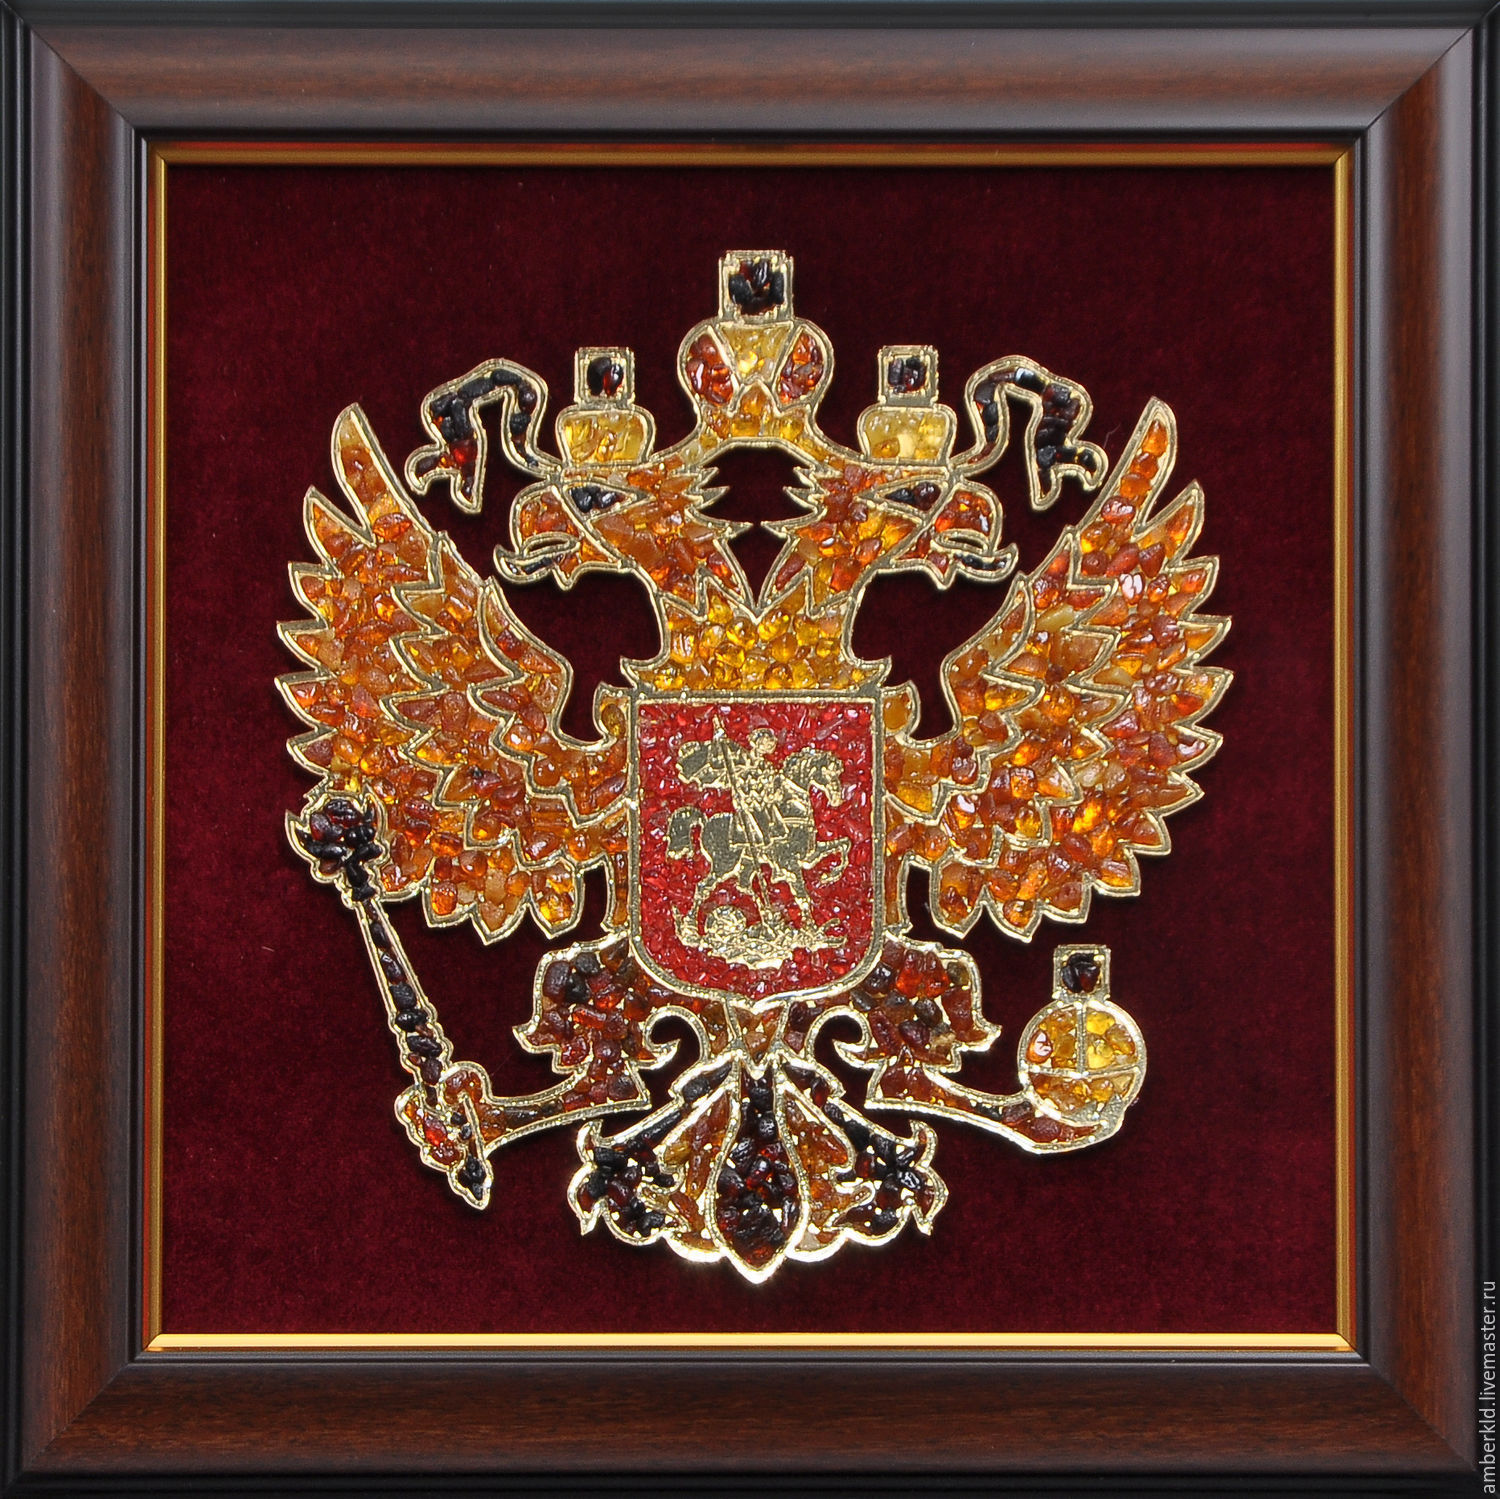 panels of amber the russian coat of arms inlaid in amber, beautiful and festive gift. the gift policies, gift military, gift officer, gift statesman.